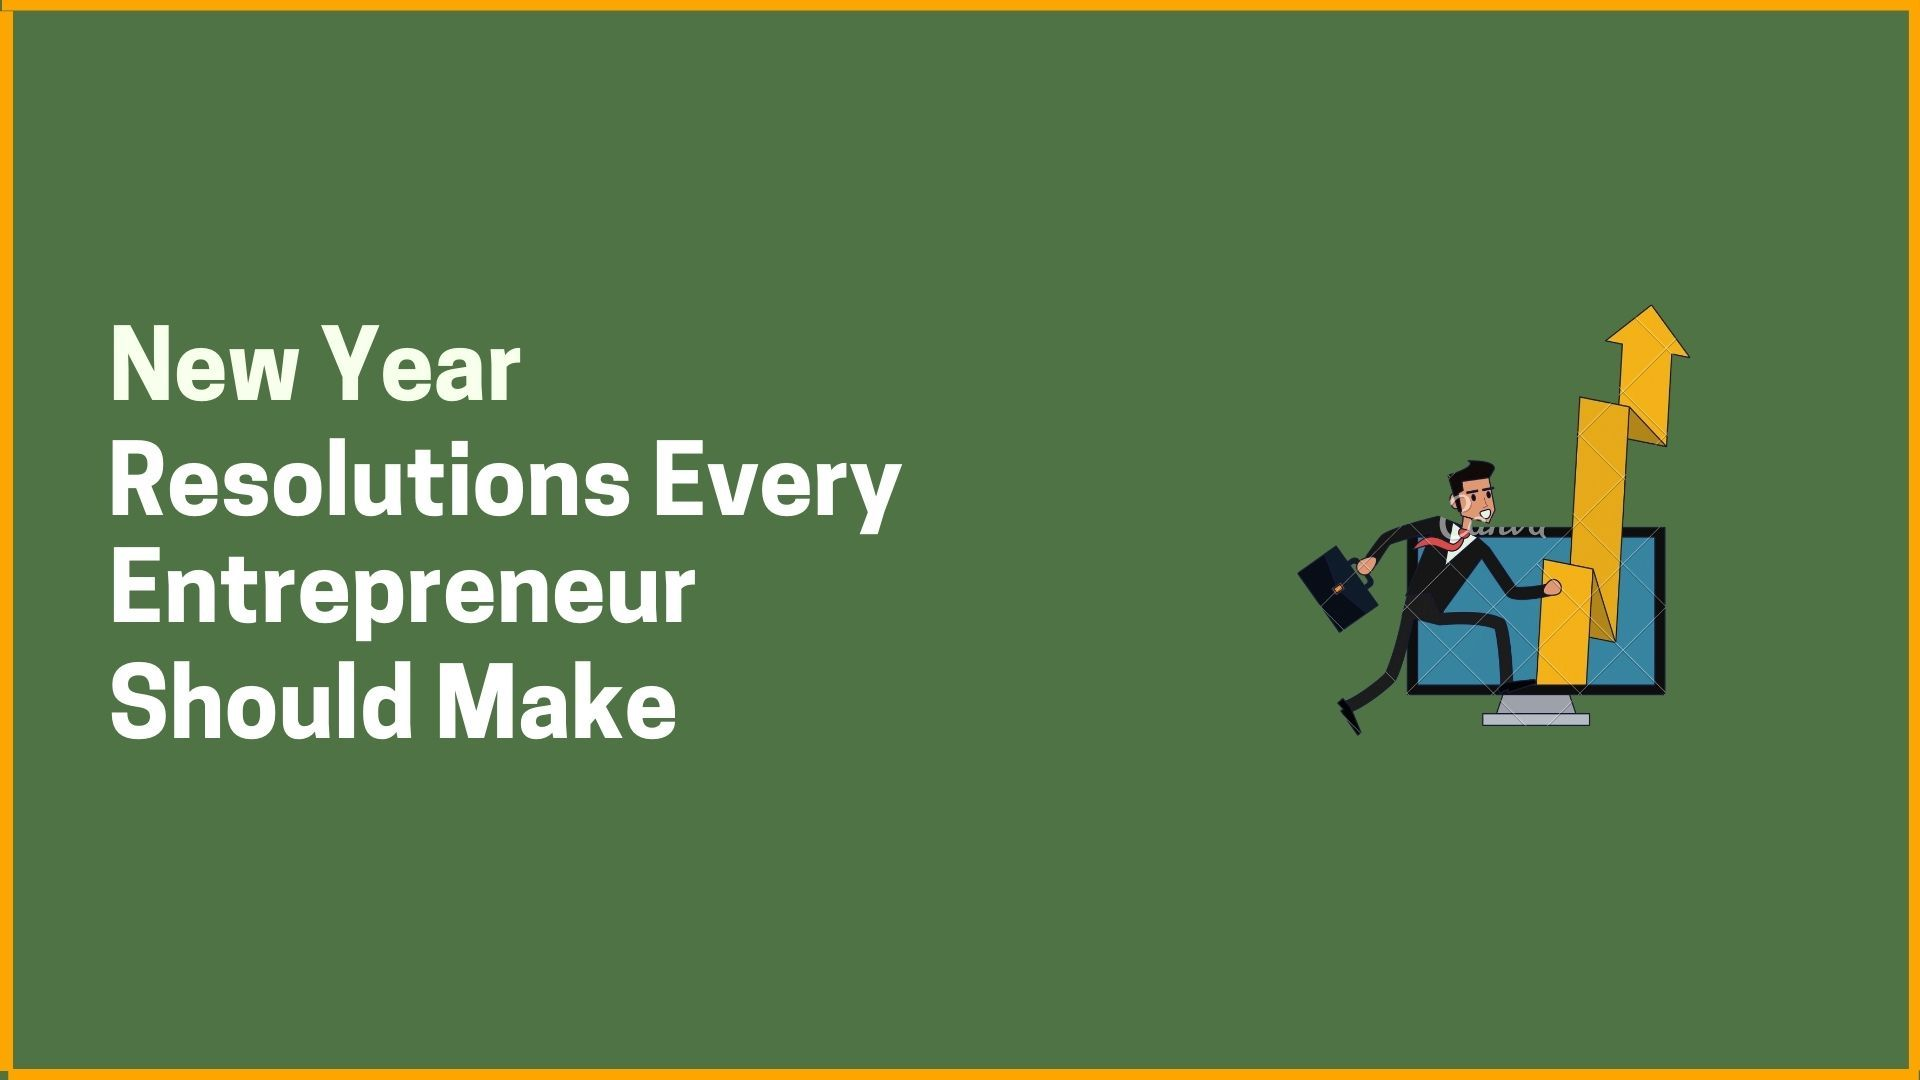 New Year Resolutions Every Entrepreneur Should Make